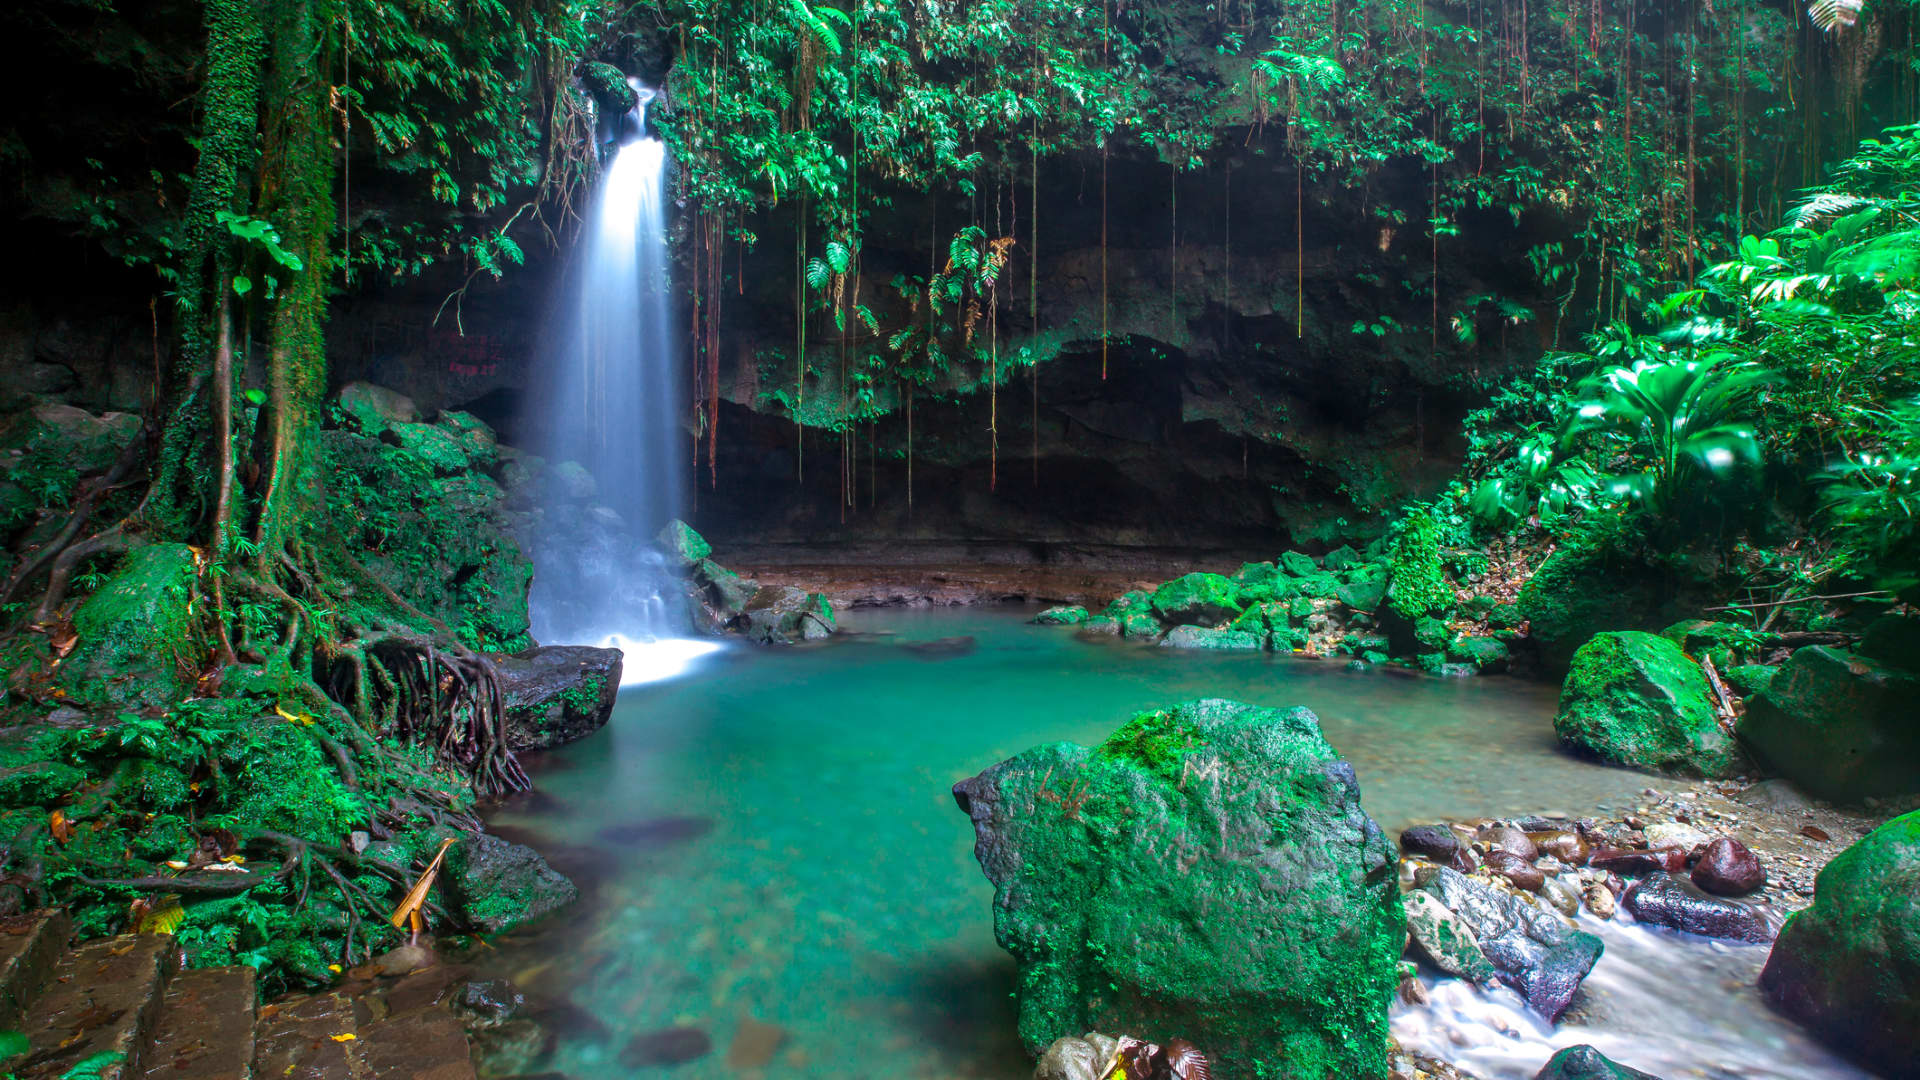 The 275-square-mile island nation of Dominica allows travelers from high-risk countries to visit places like Trafalgar Falls and the Emerald Pool (shown here).